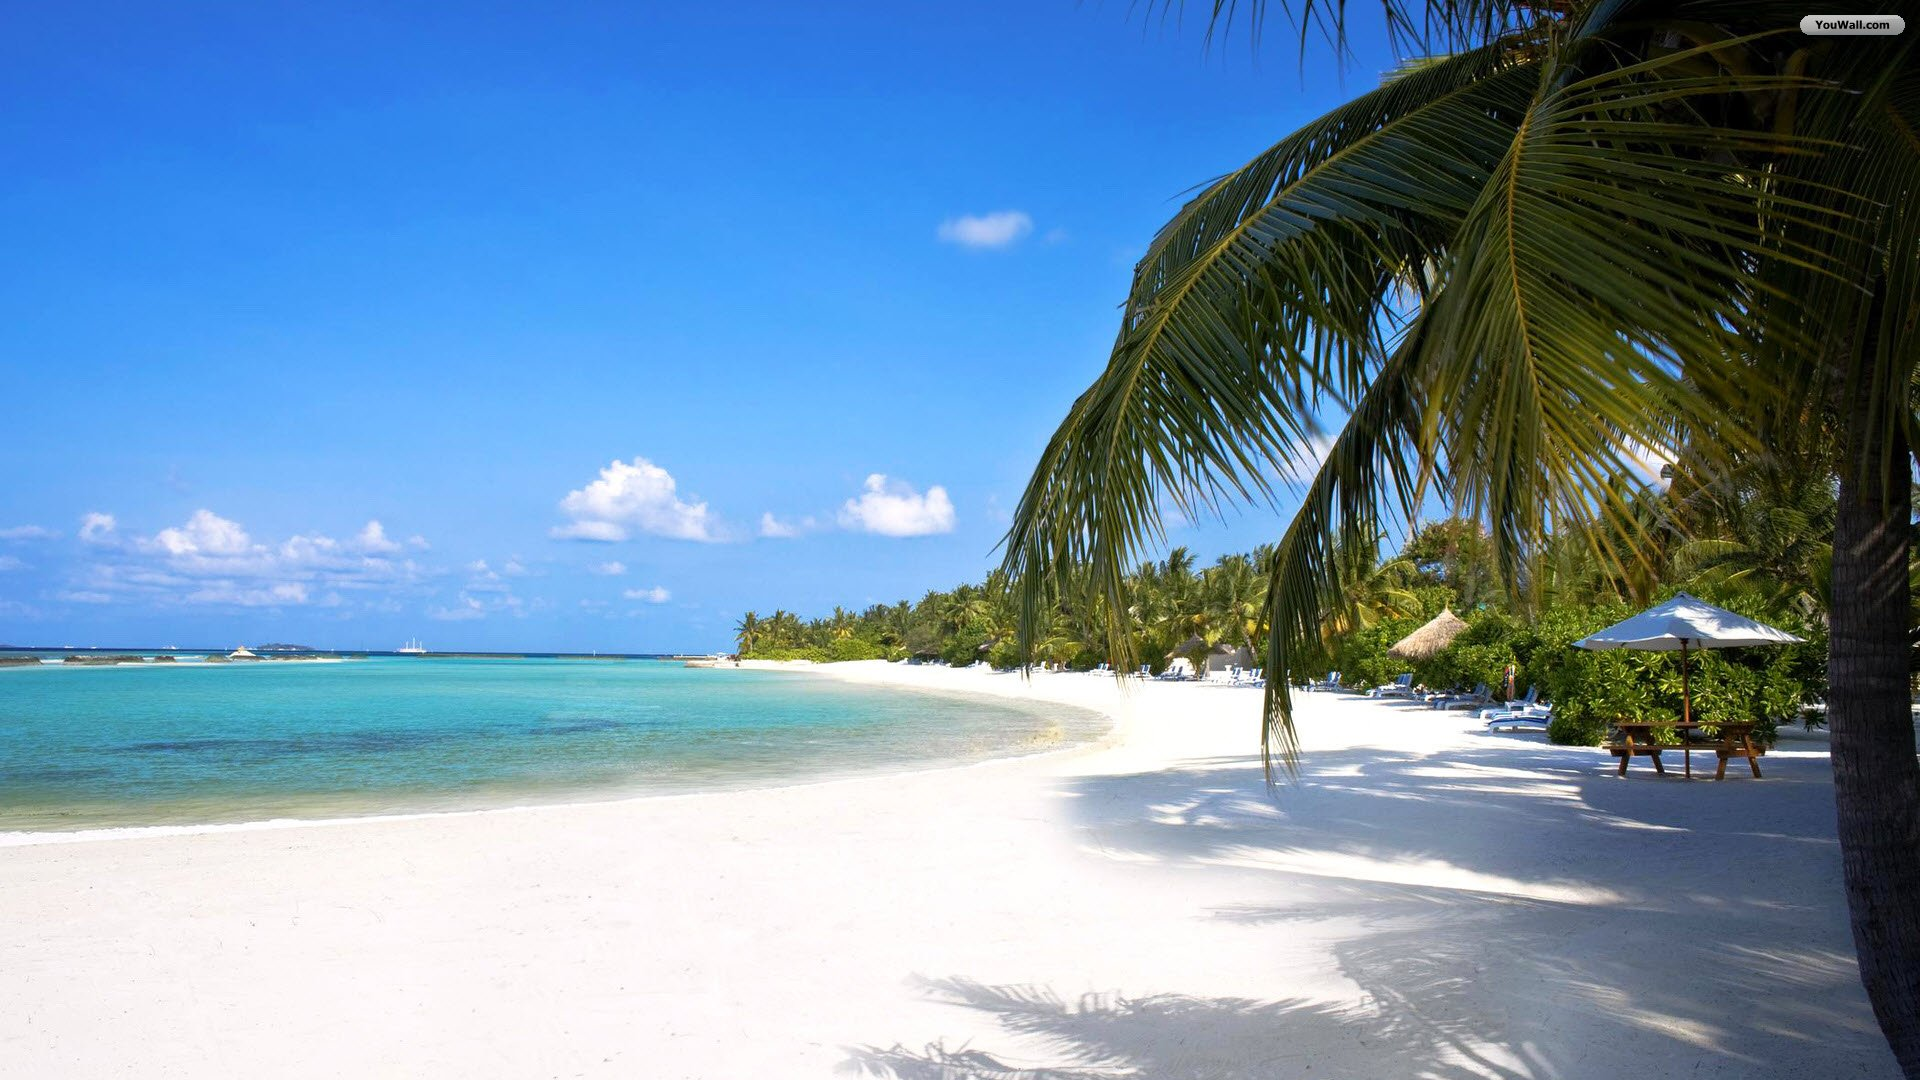 Amazing Tropical Beach Wallpaper   wallpaperwallpapersfree wallpaper 1920x1080